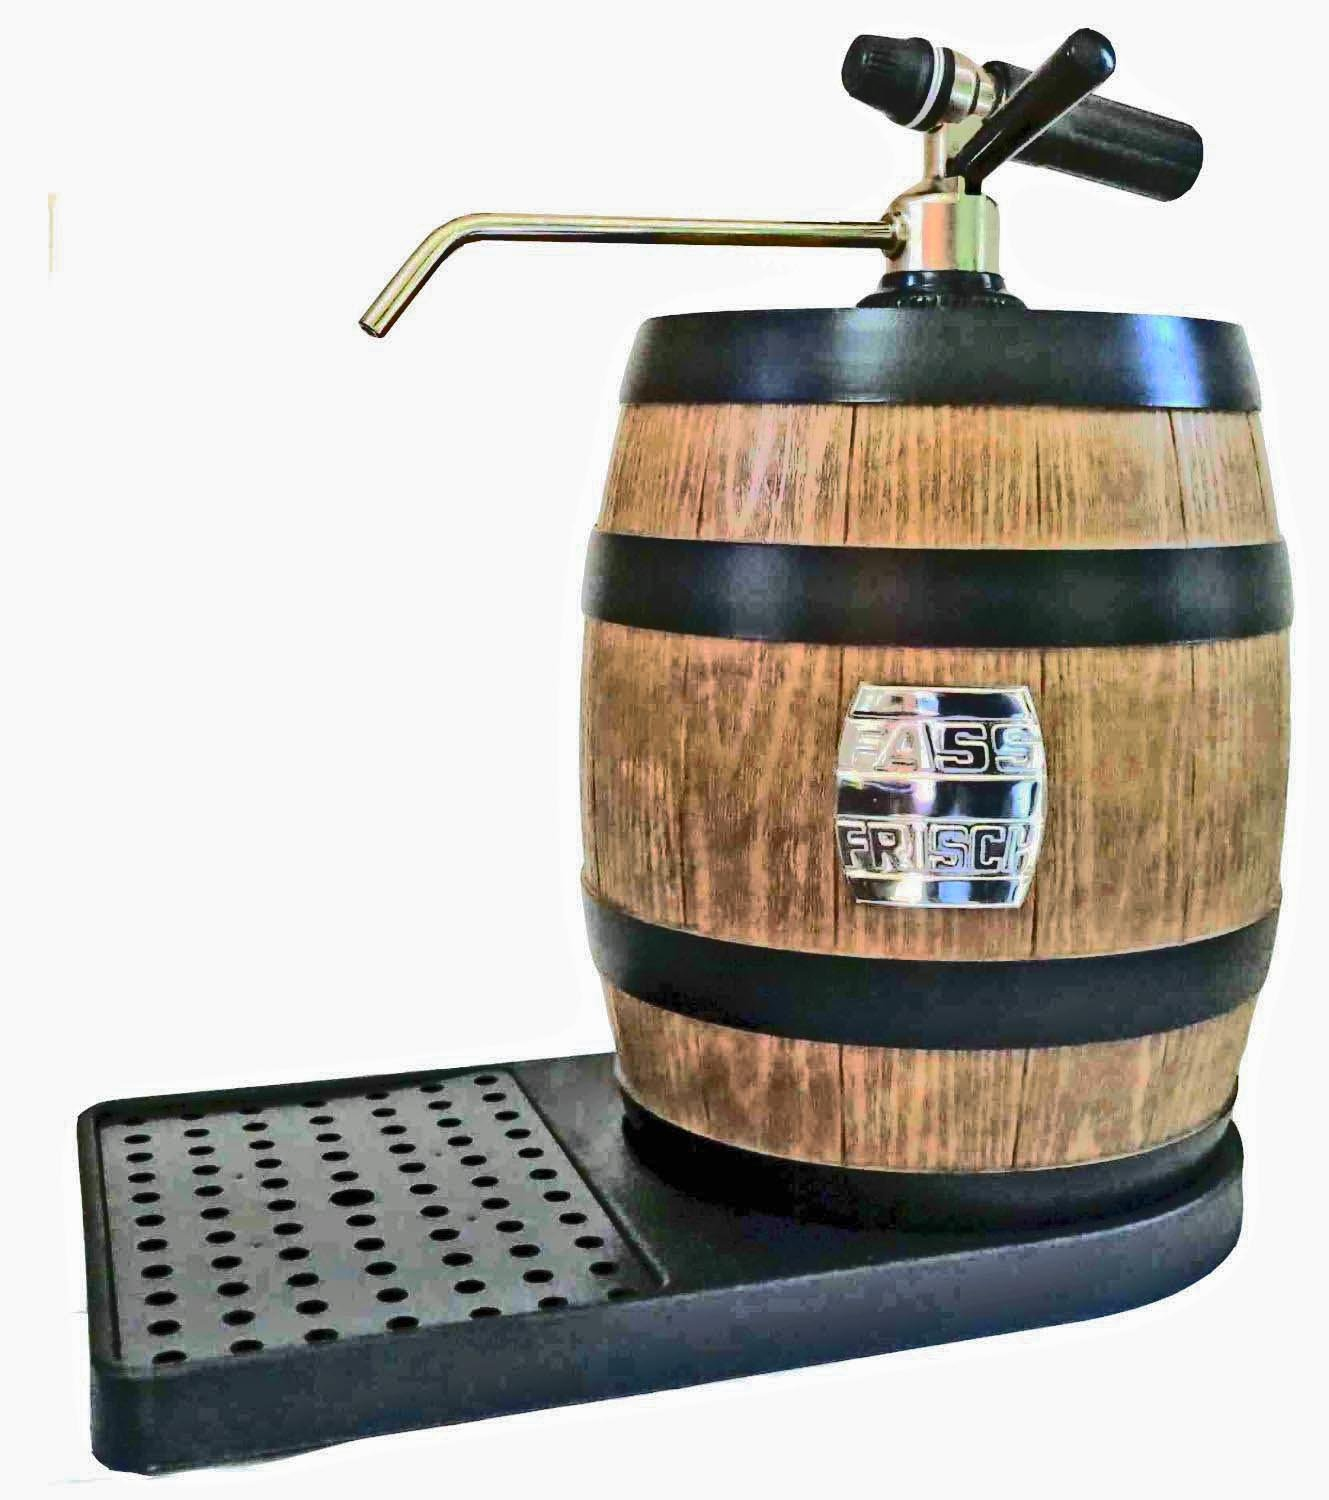 Luxury Table-Top Beer Dispenser with CO2 Device for 5 L Party Kegs Fass-Frisch®